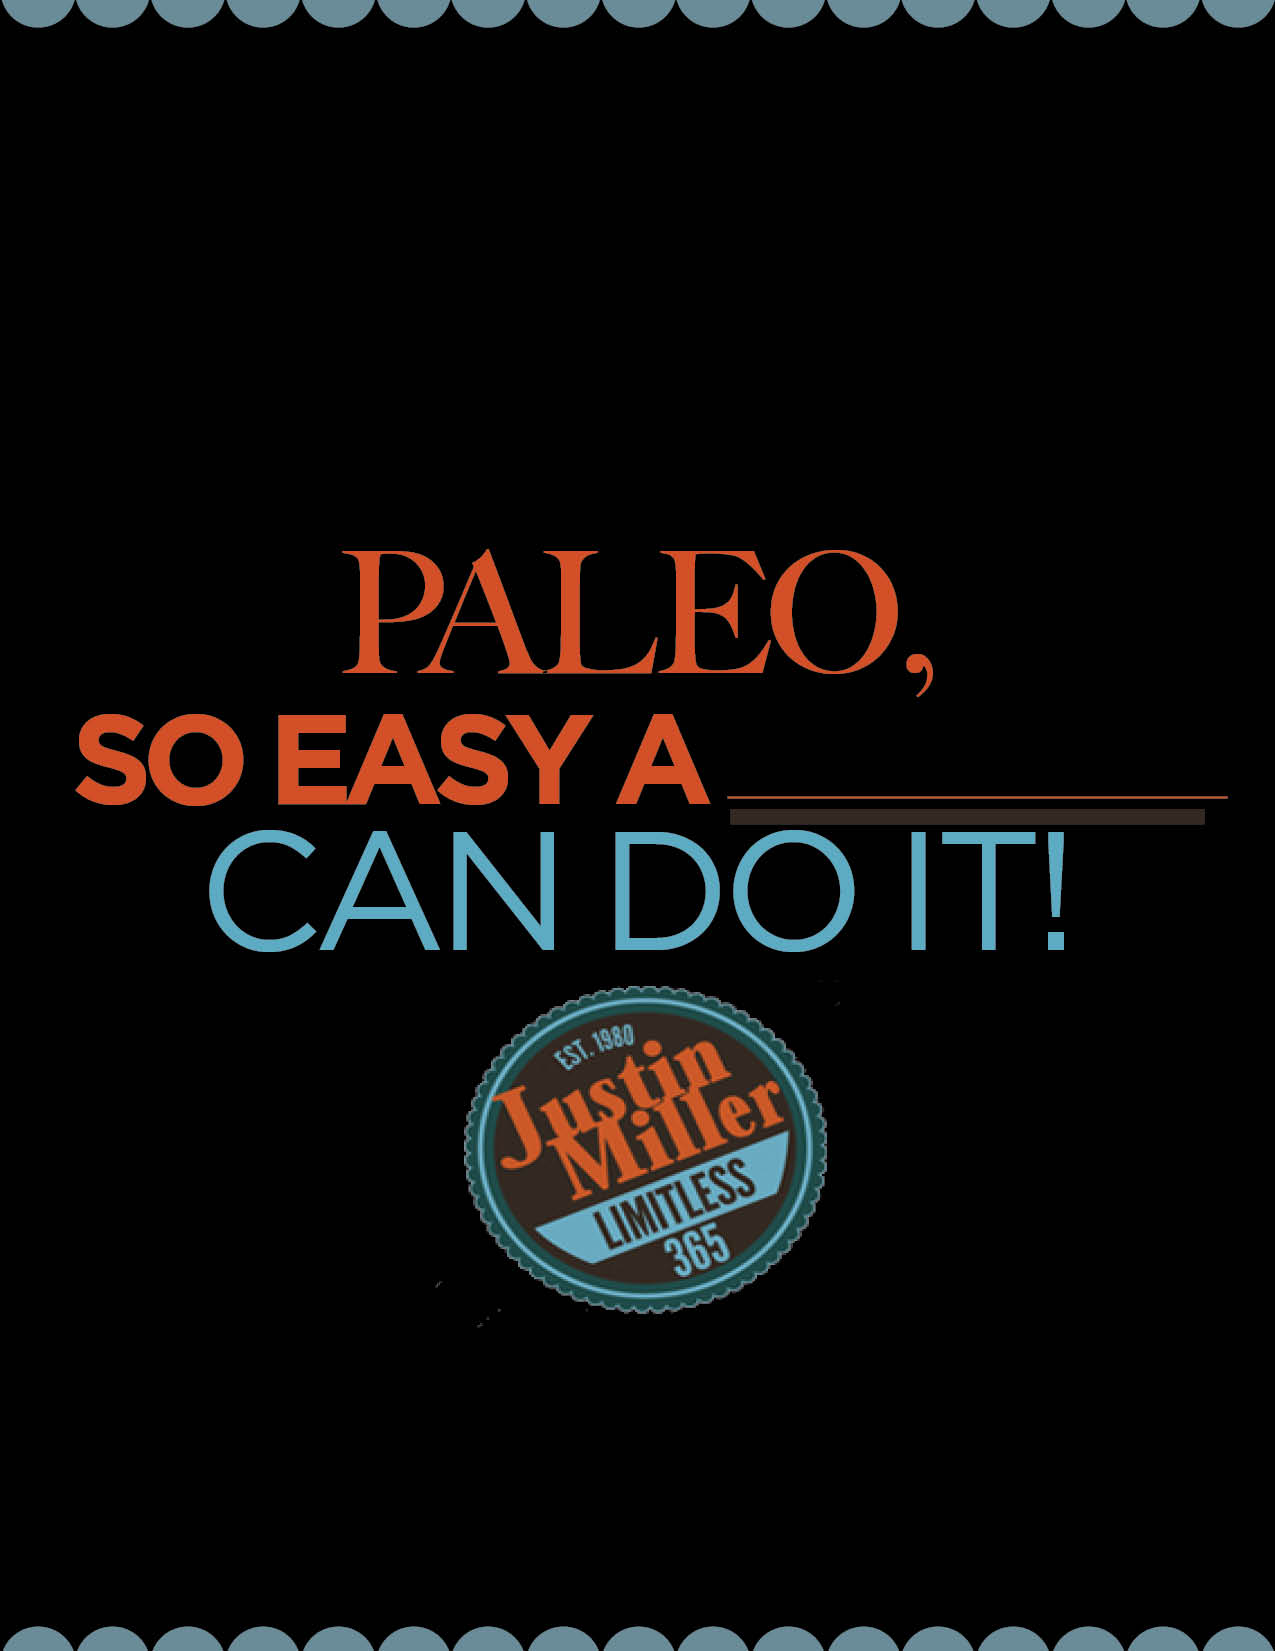 paleo so easy